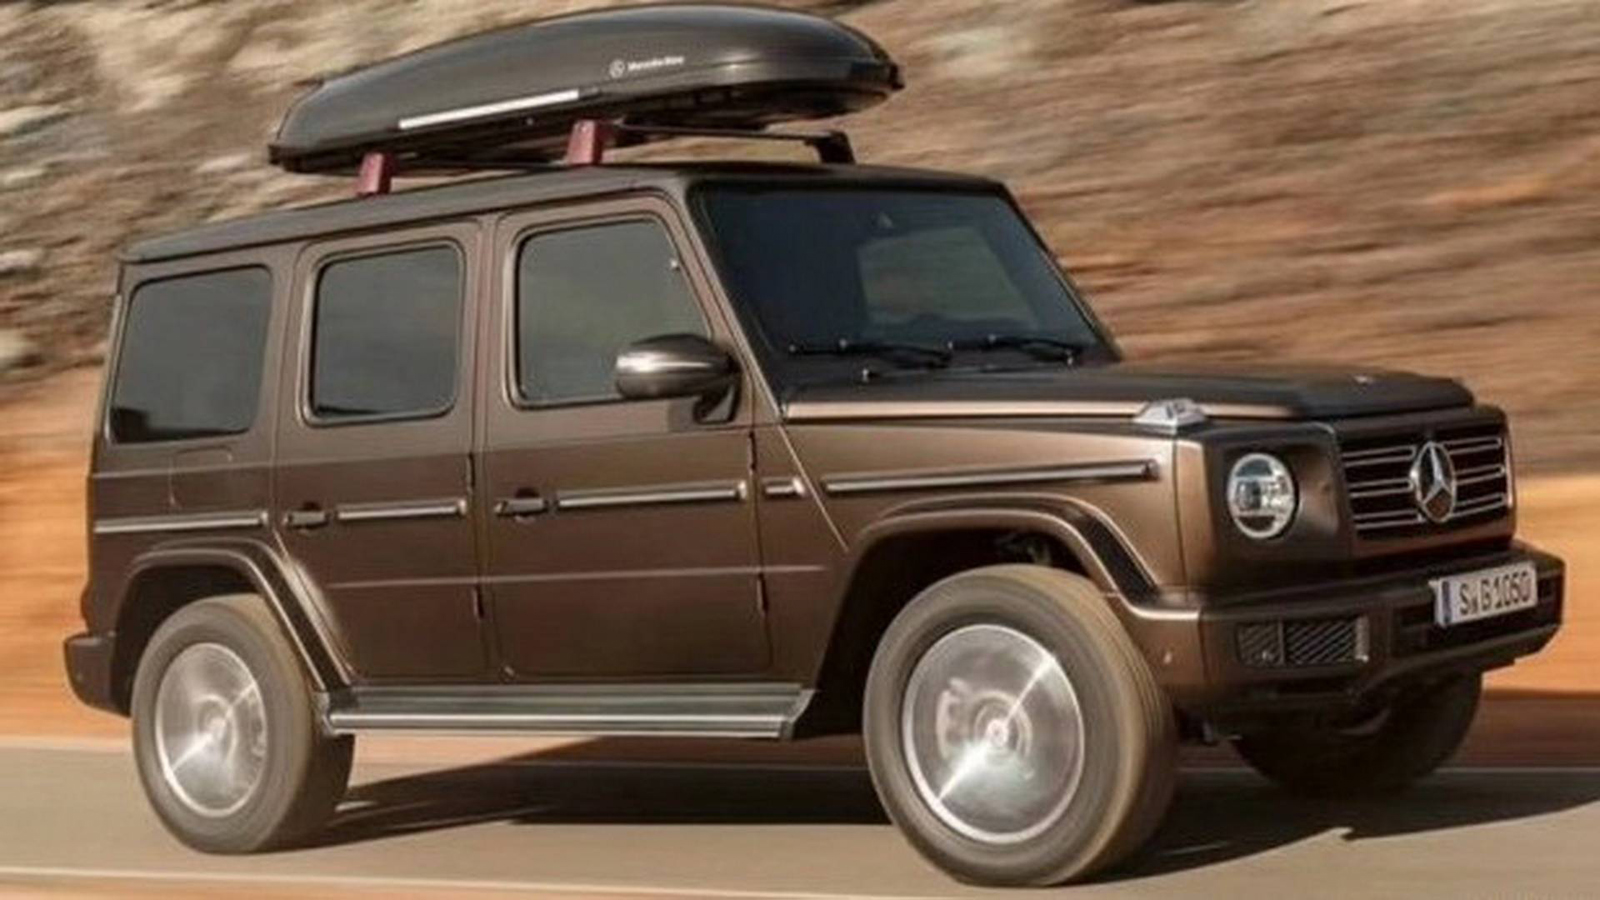 Mercedes Benz G Class Used Cars